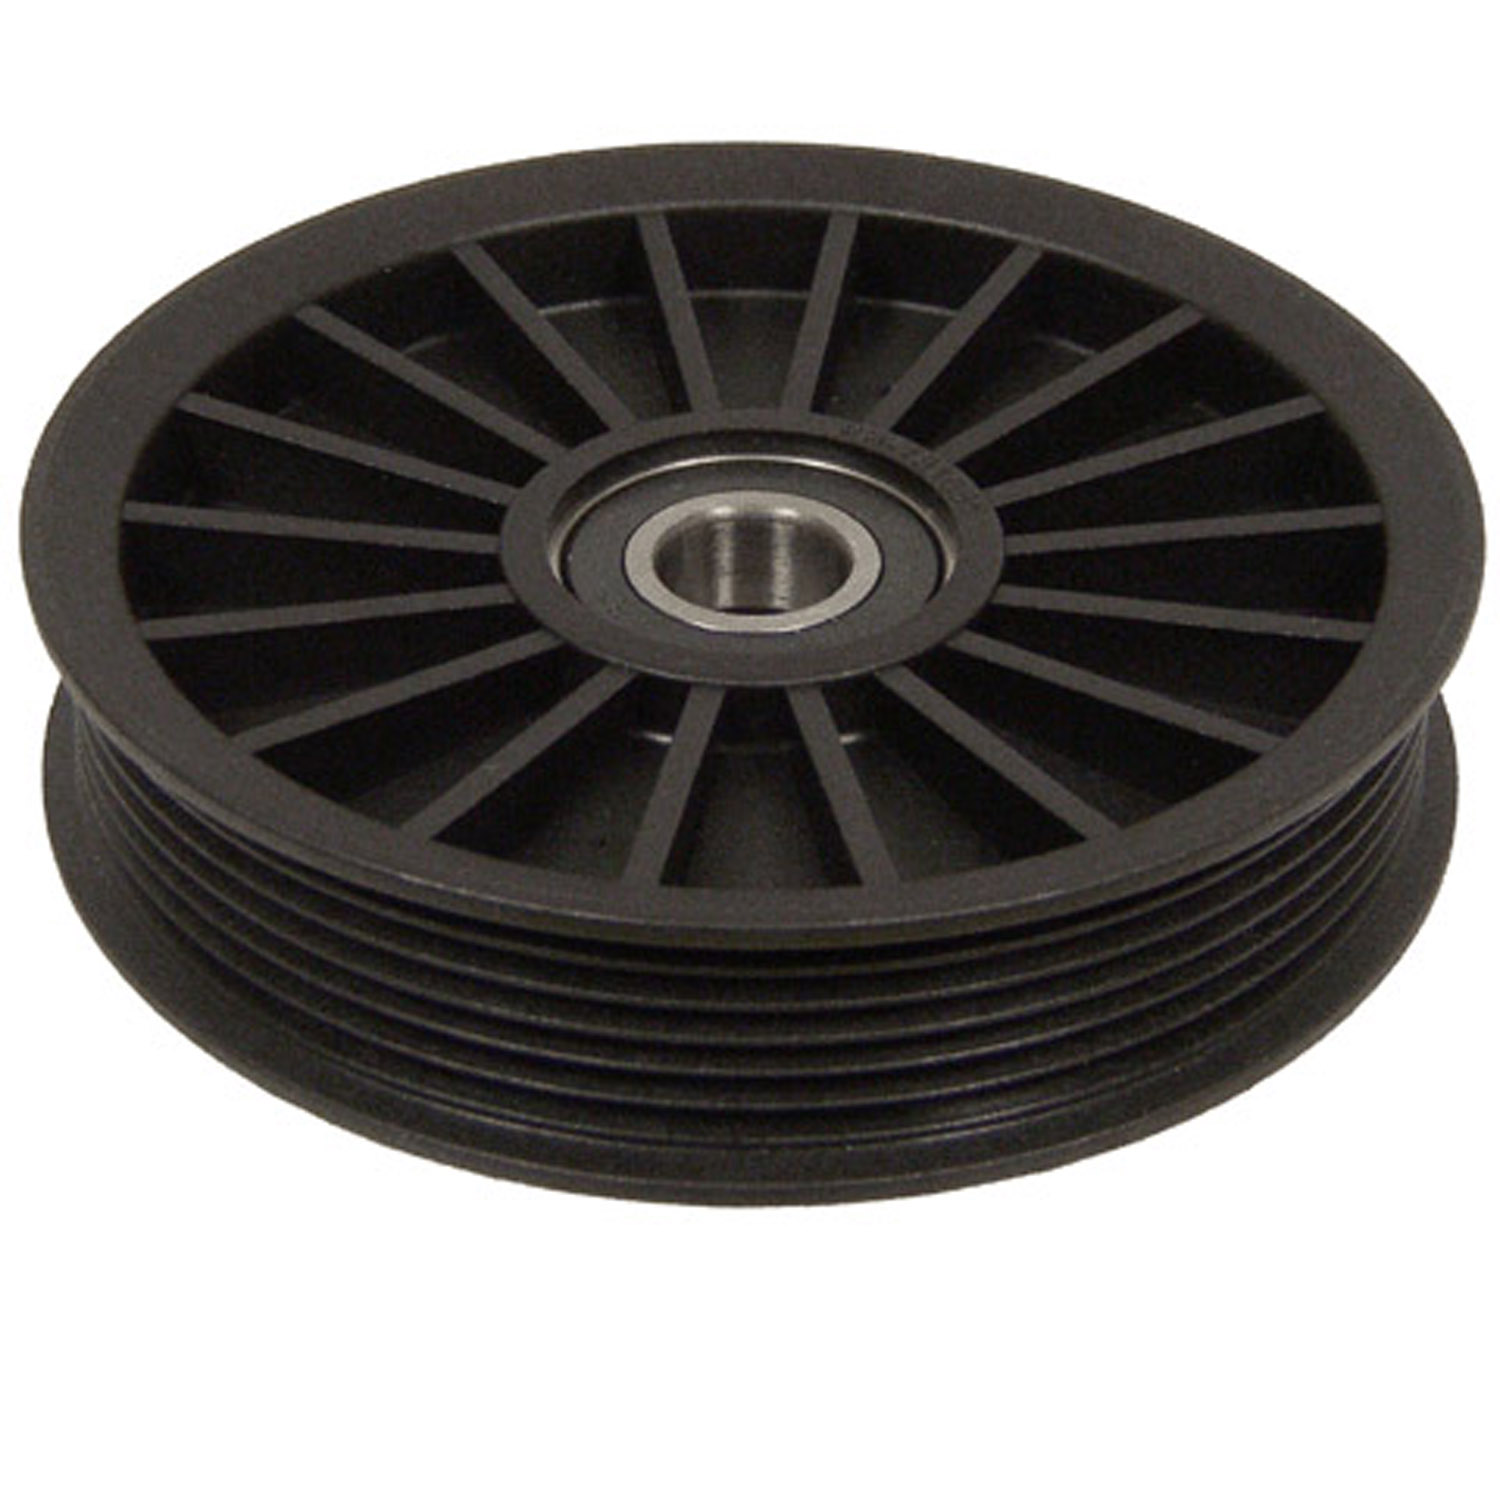 Serpentine Belt Idler Pulley 132MM 6GR FLANGE